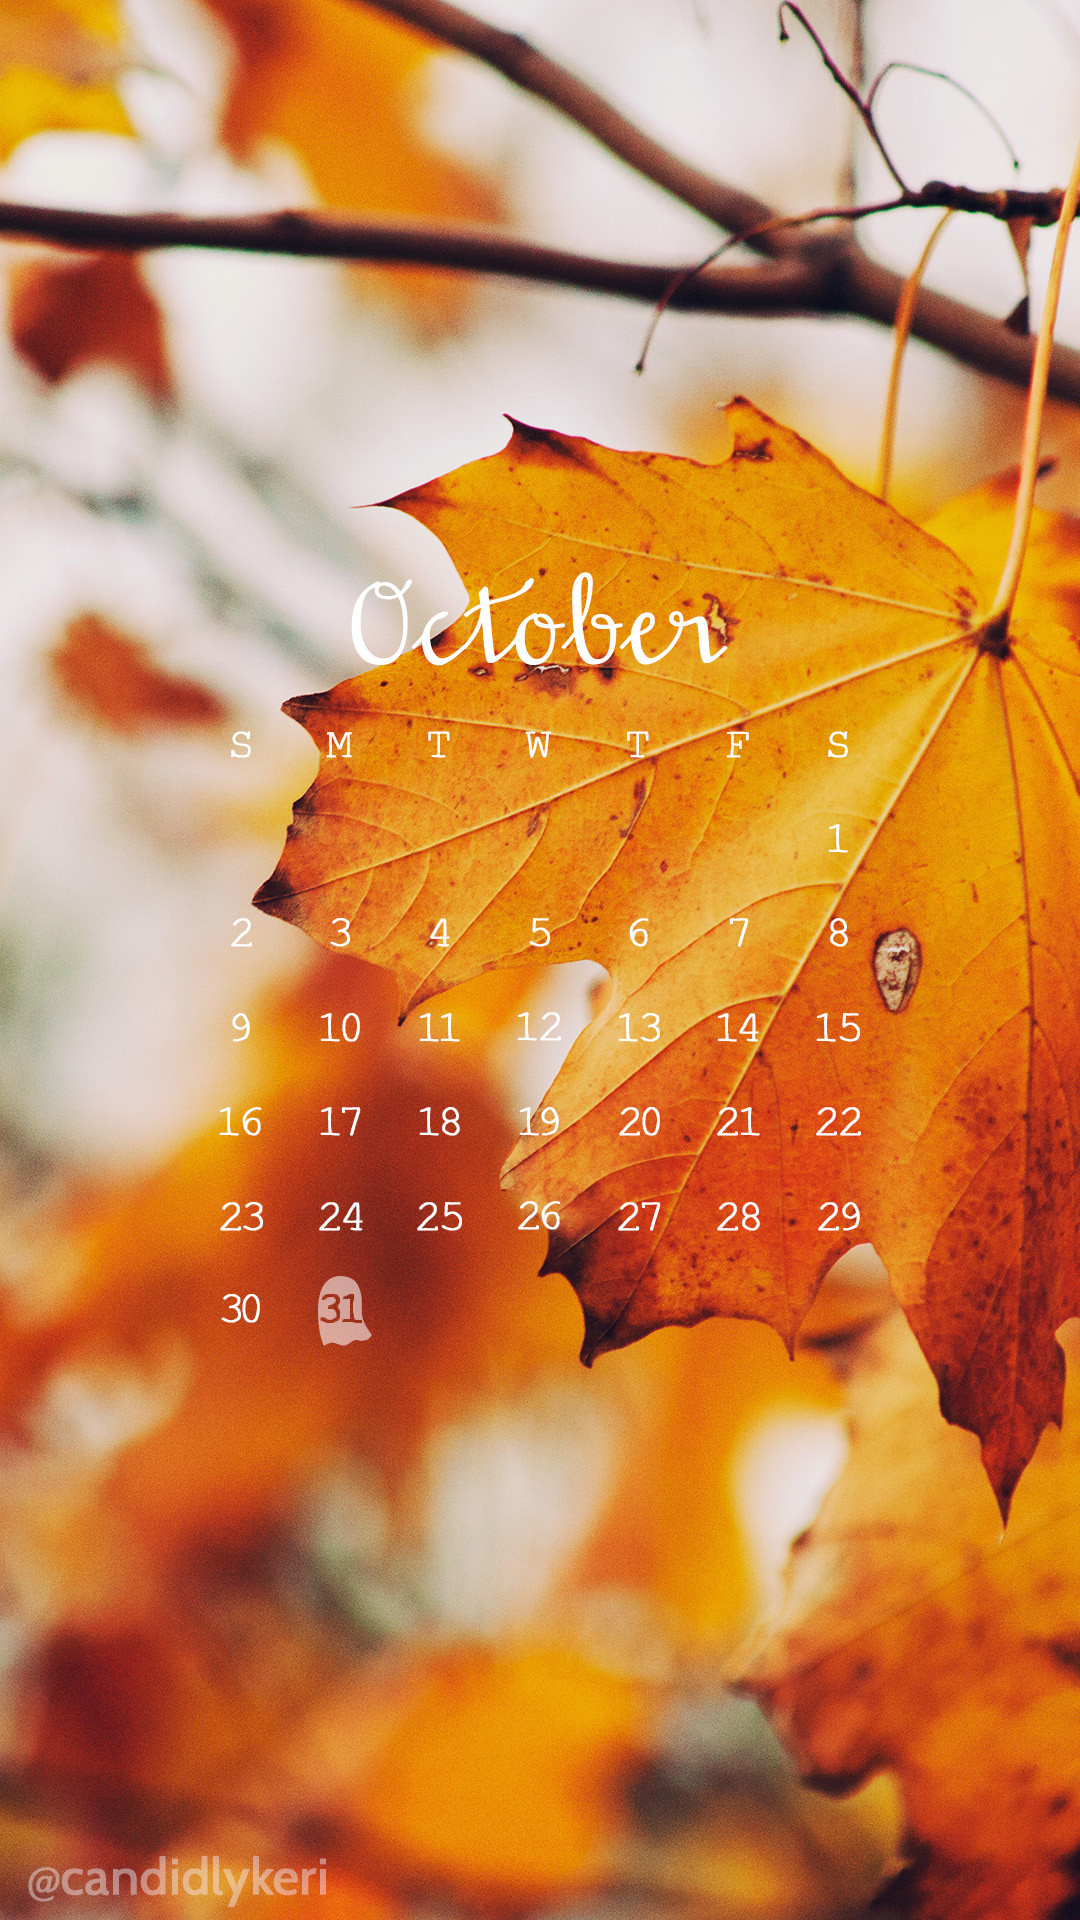 Quotes About Fall Season: Fall Pumpkin Wallpaper And Screensavers (63+ Images